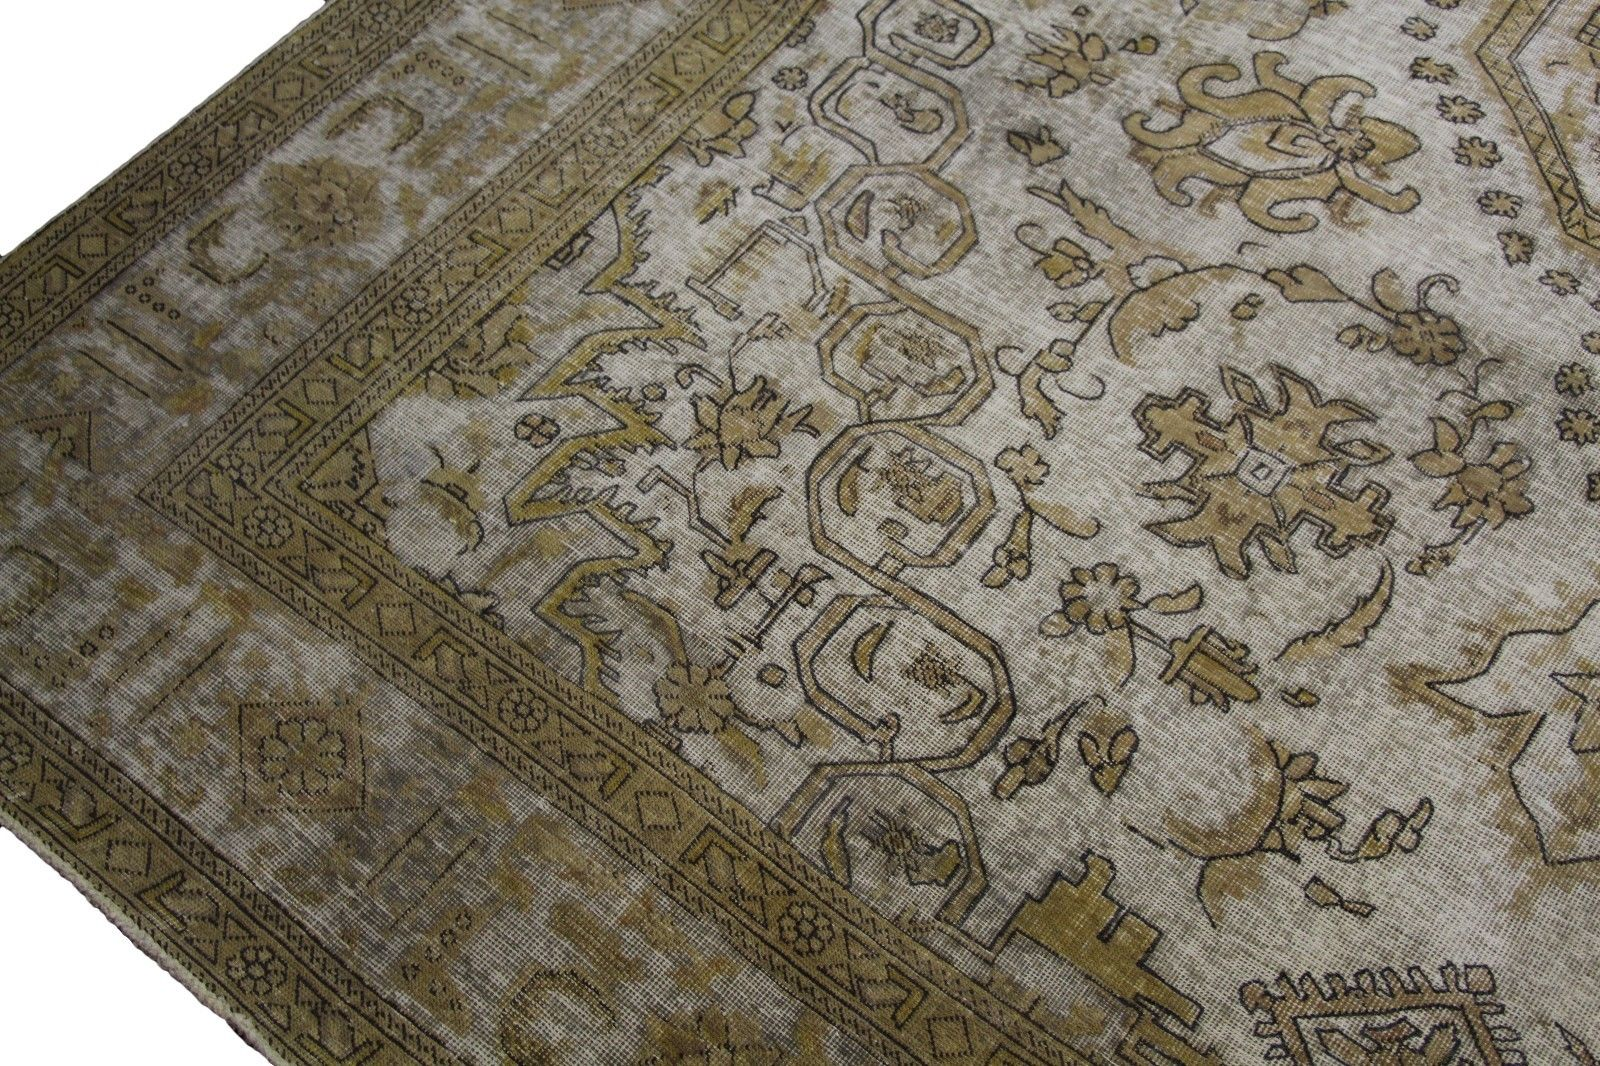 10x13 Distressed Vintage Beige Rug Low Wool Pile OOAK Worn Out Look 2906 - west of hudson